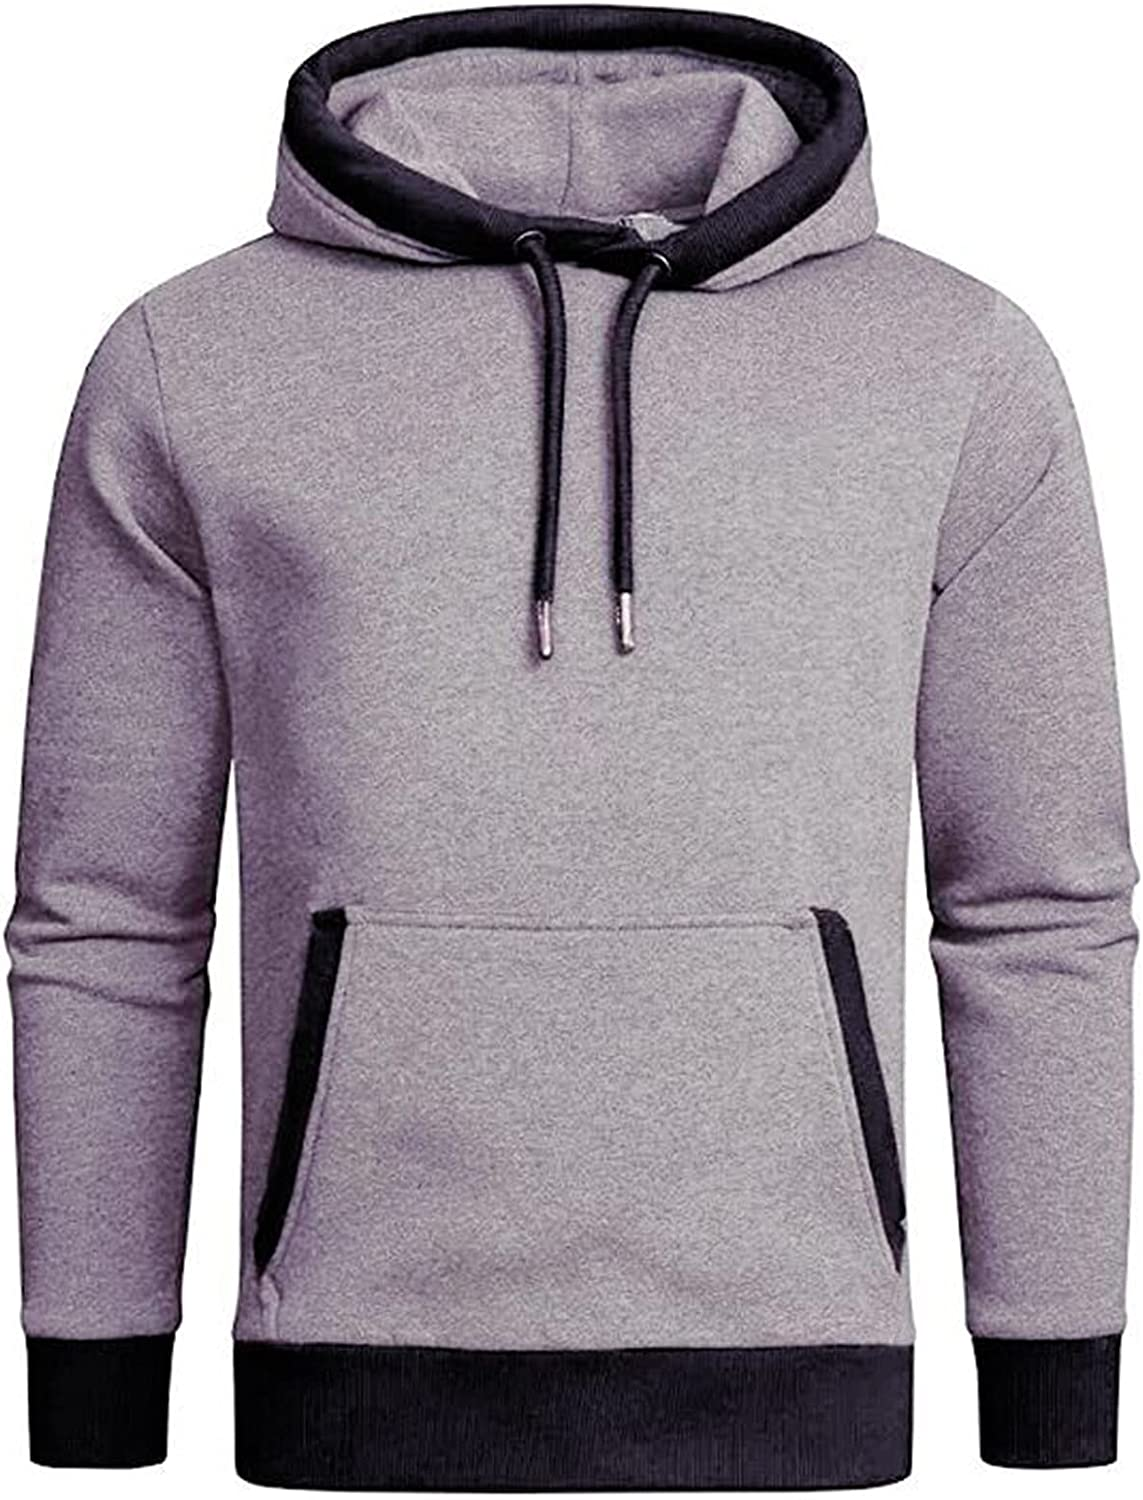 XXBR Hoodies for Mens, Drawstring Cowl Neck Hooded Sweatshirts Color Block Patchwork Sports Workout Casual Pullover